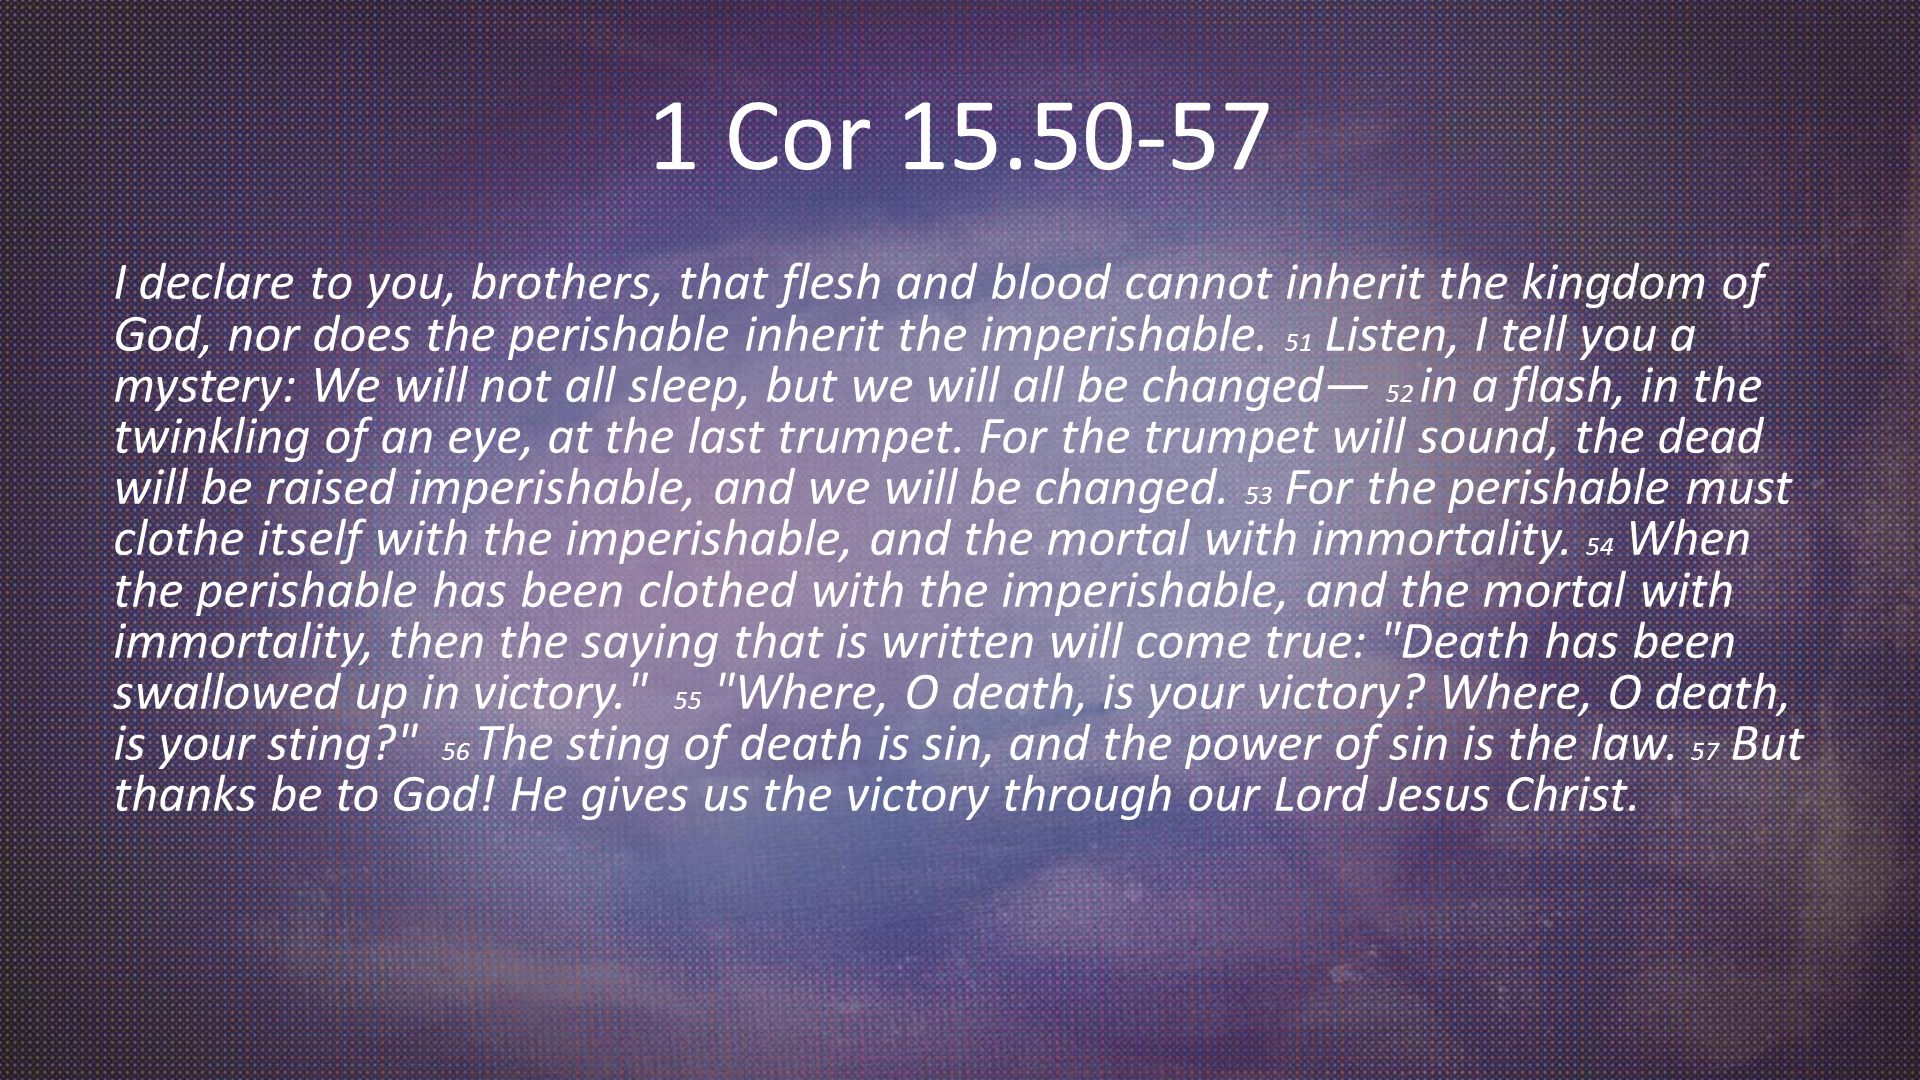 1 Cor 15.50-57 I declare to you, brothers, that flesh and blood cannot inherit the kingdom of God, nor does the perishable inherit the imperishable.